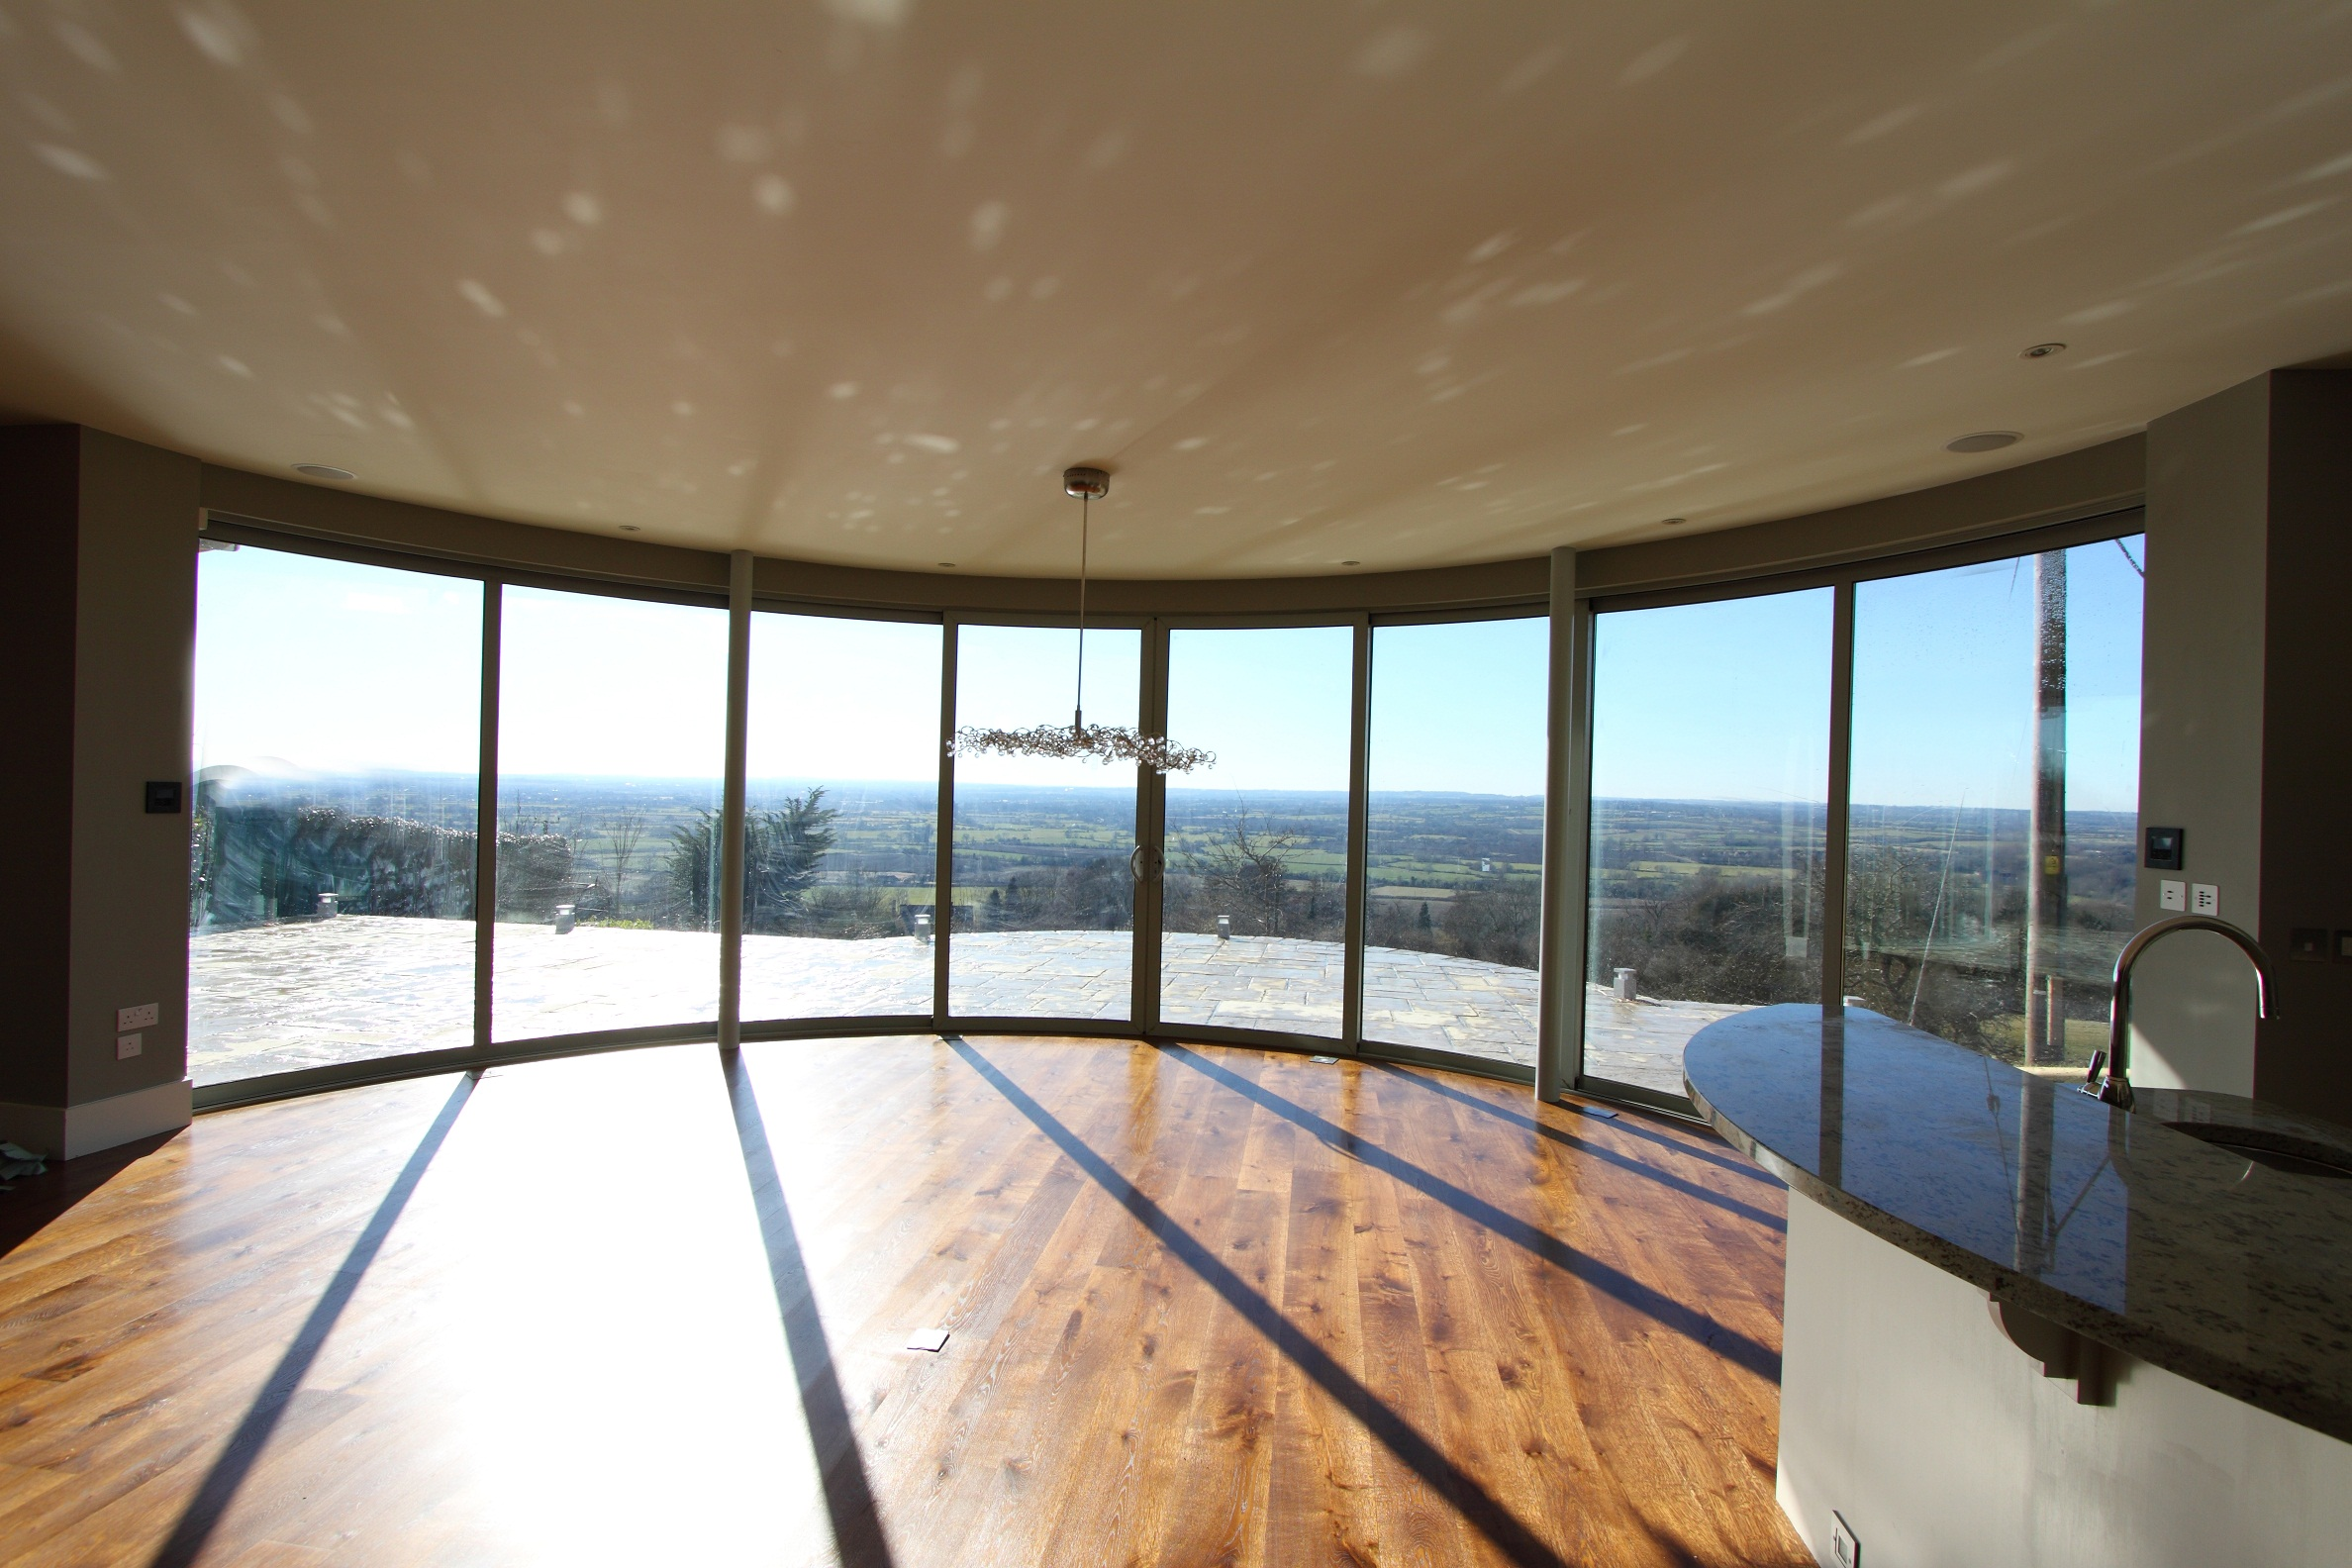 curved sliding glass doors with panoramic views. Black Bedroom Furniture Sets. Home Design Ideas